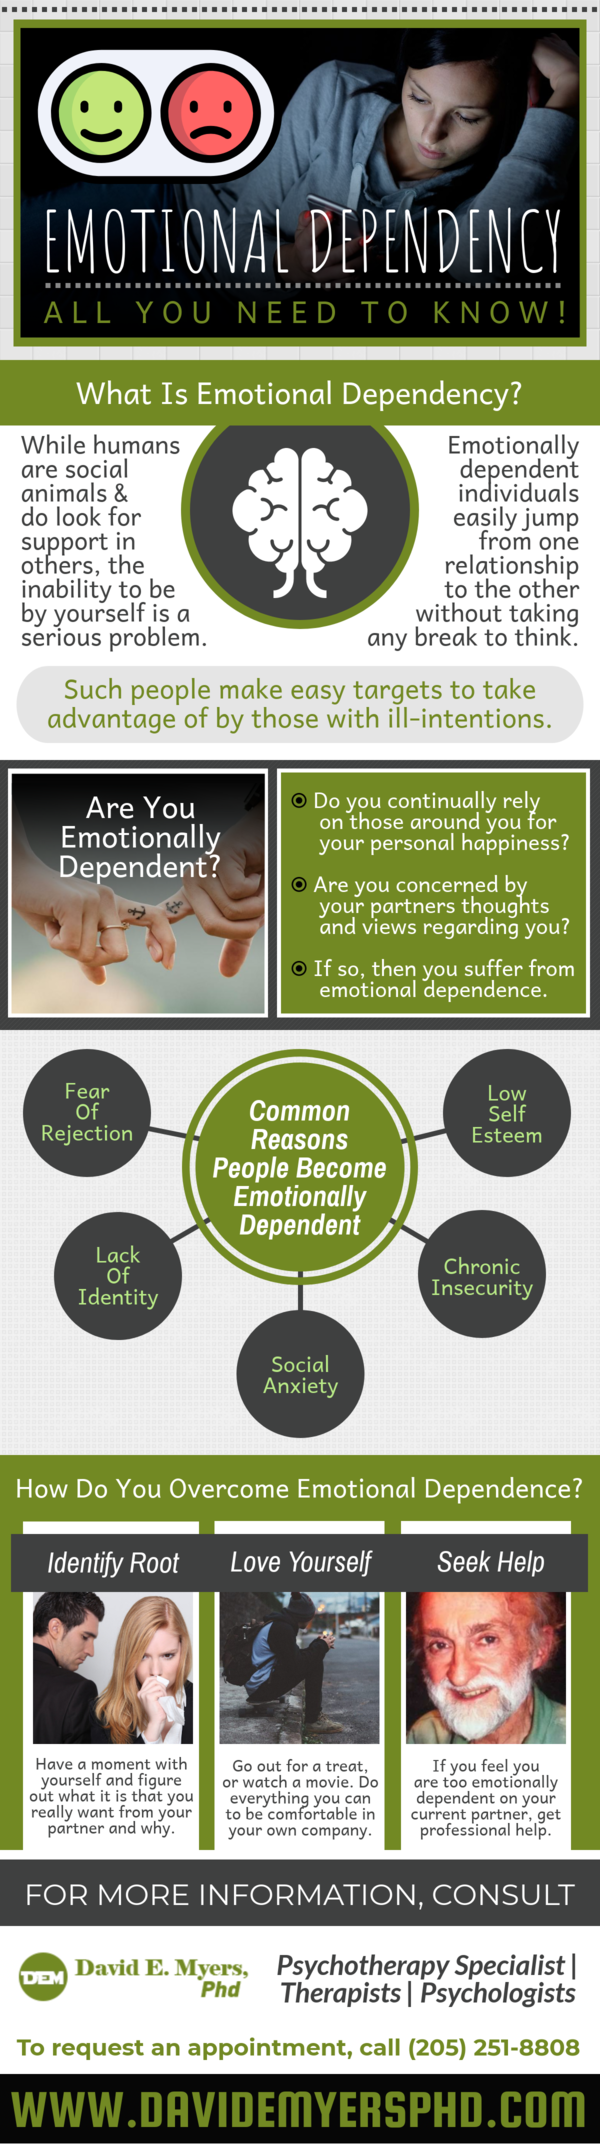 What Is Emotional Dependency